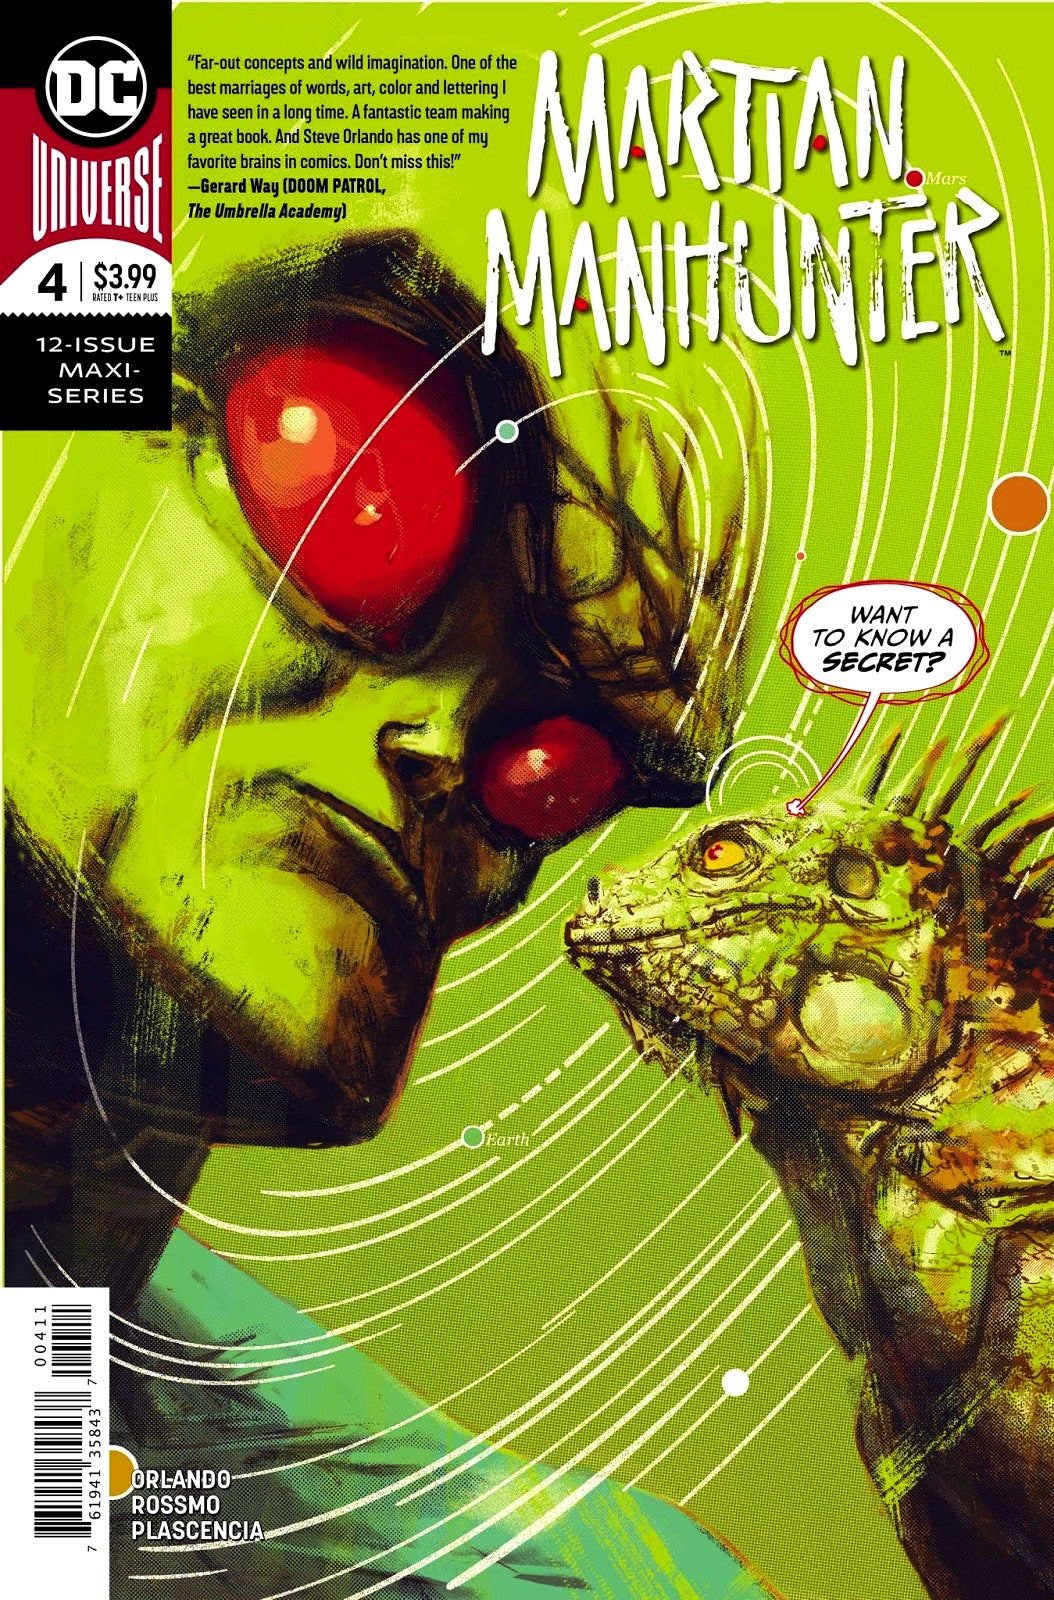 Martian Manhunter (2018) #4 (of 12)